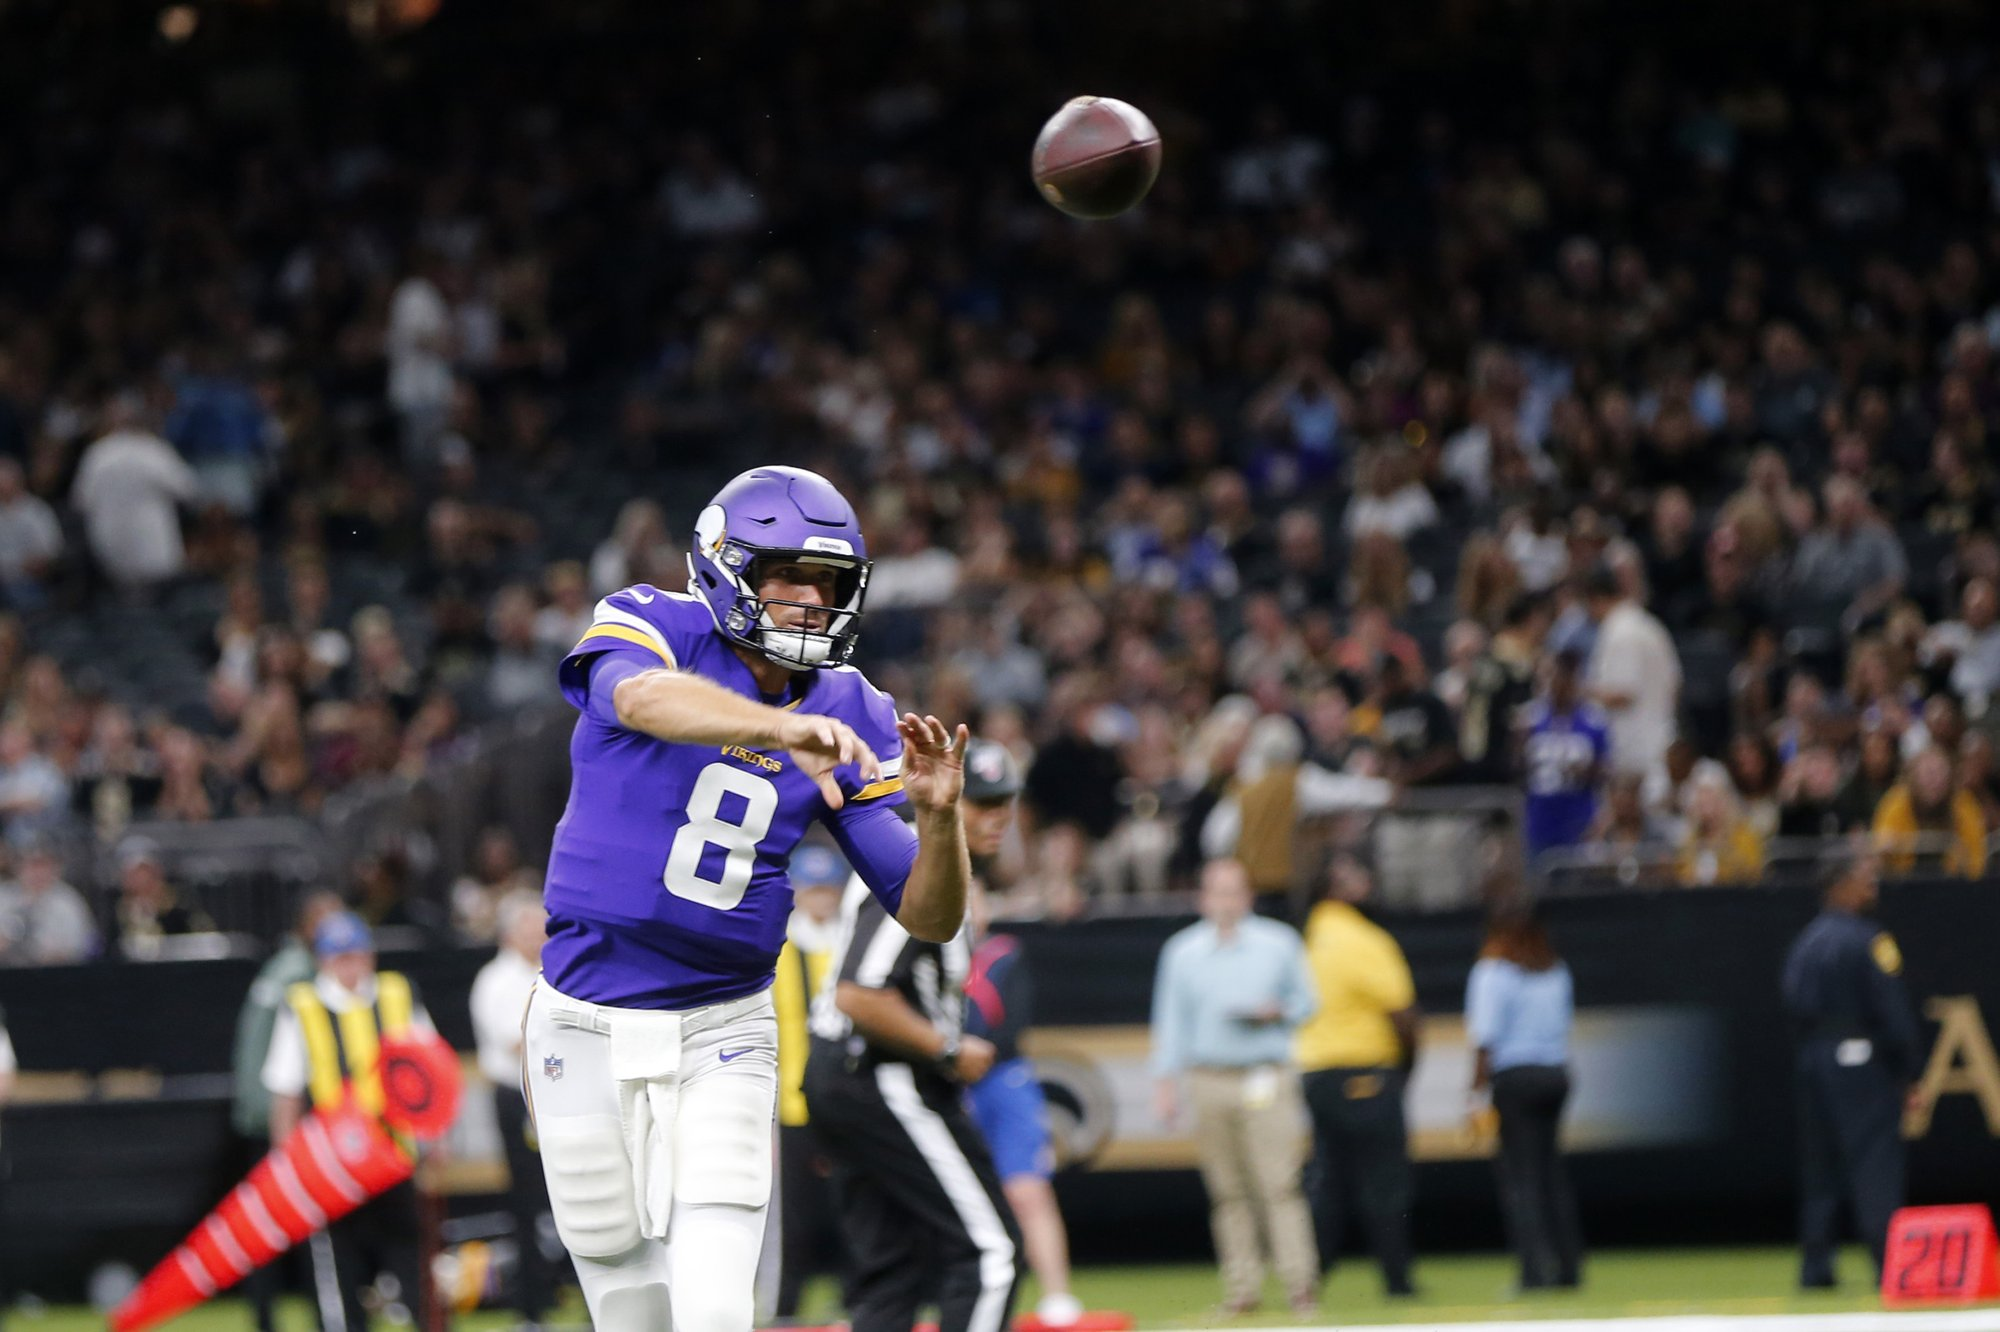 NFL 2019: Buzz is missing, but pressure persists for Vikings